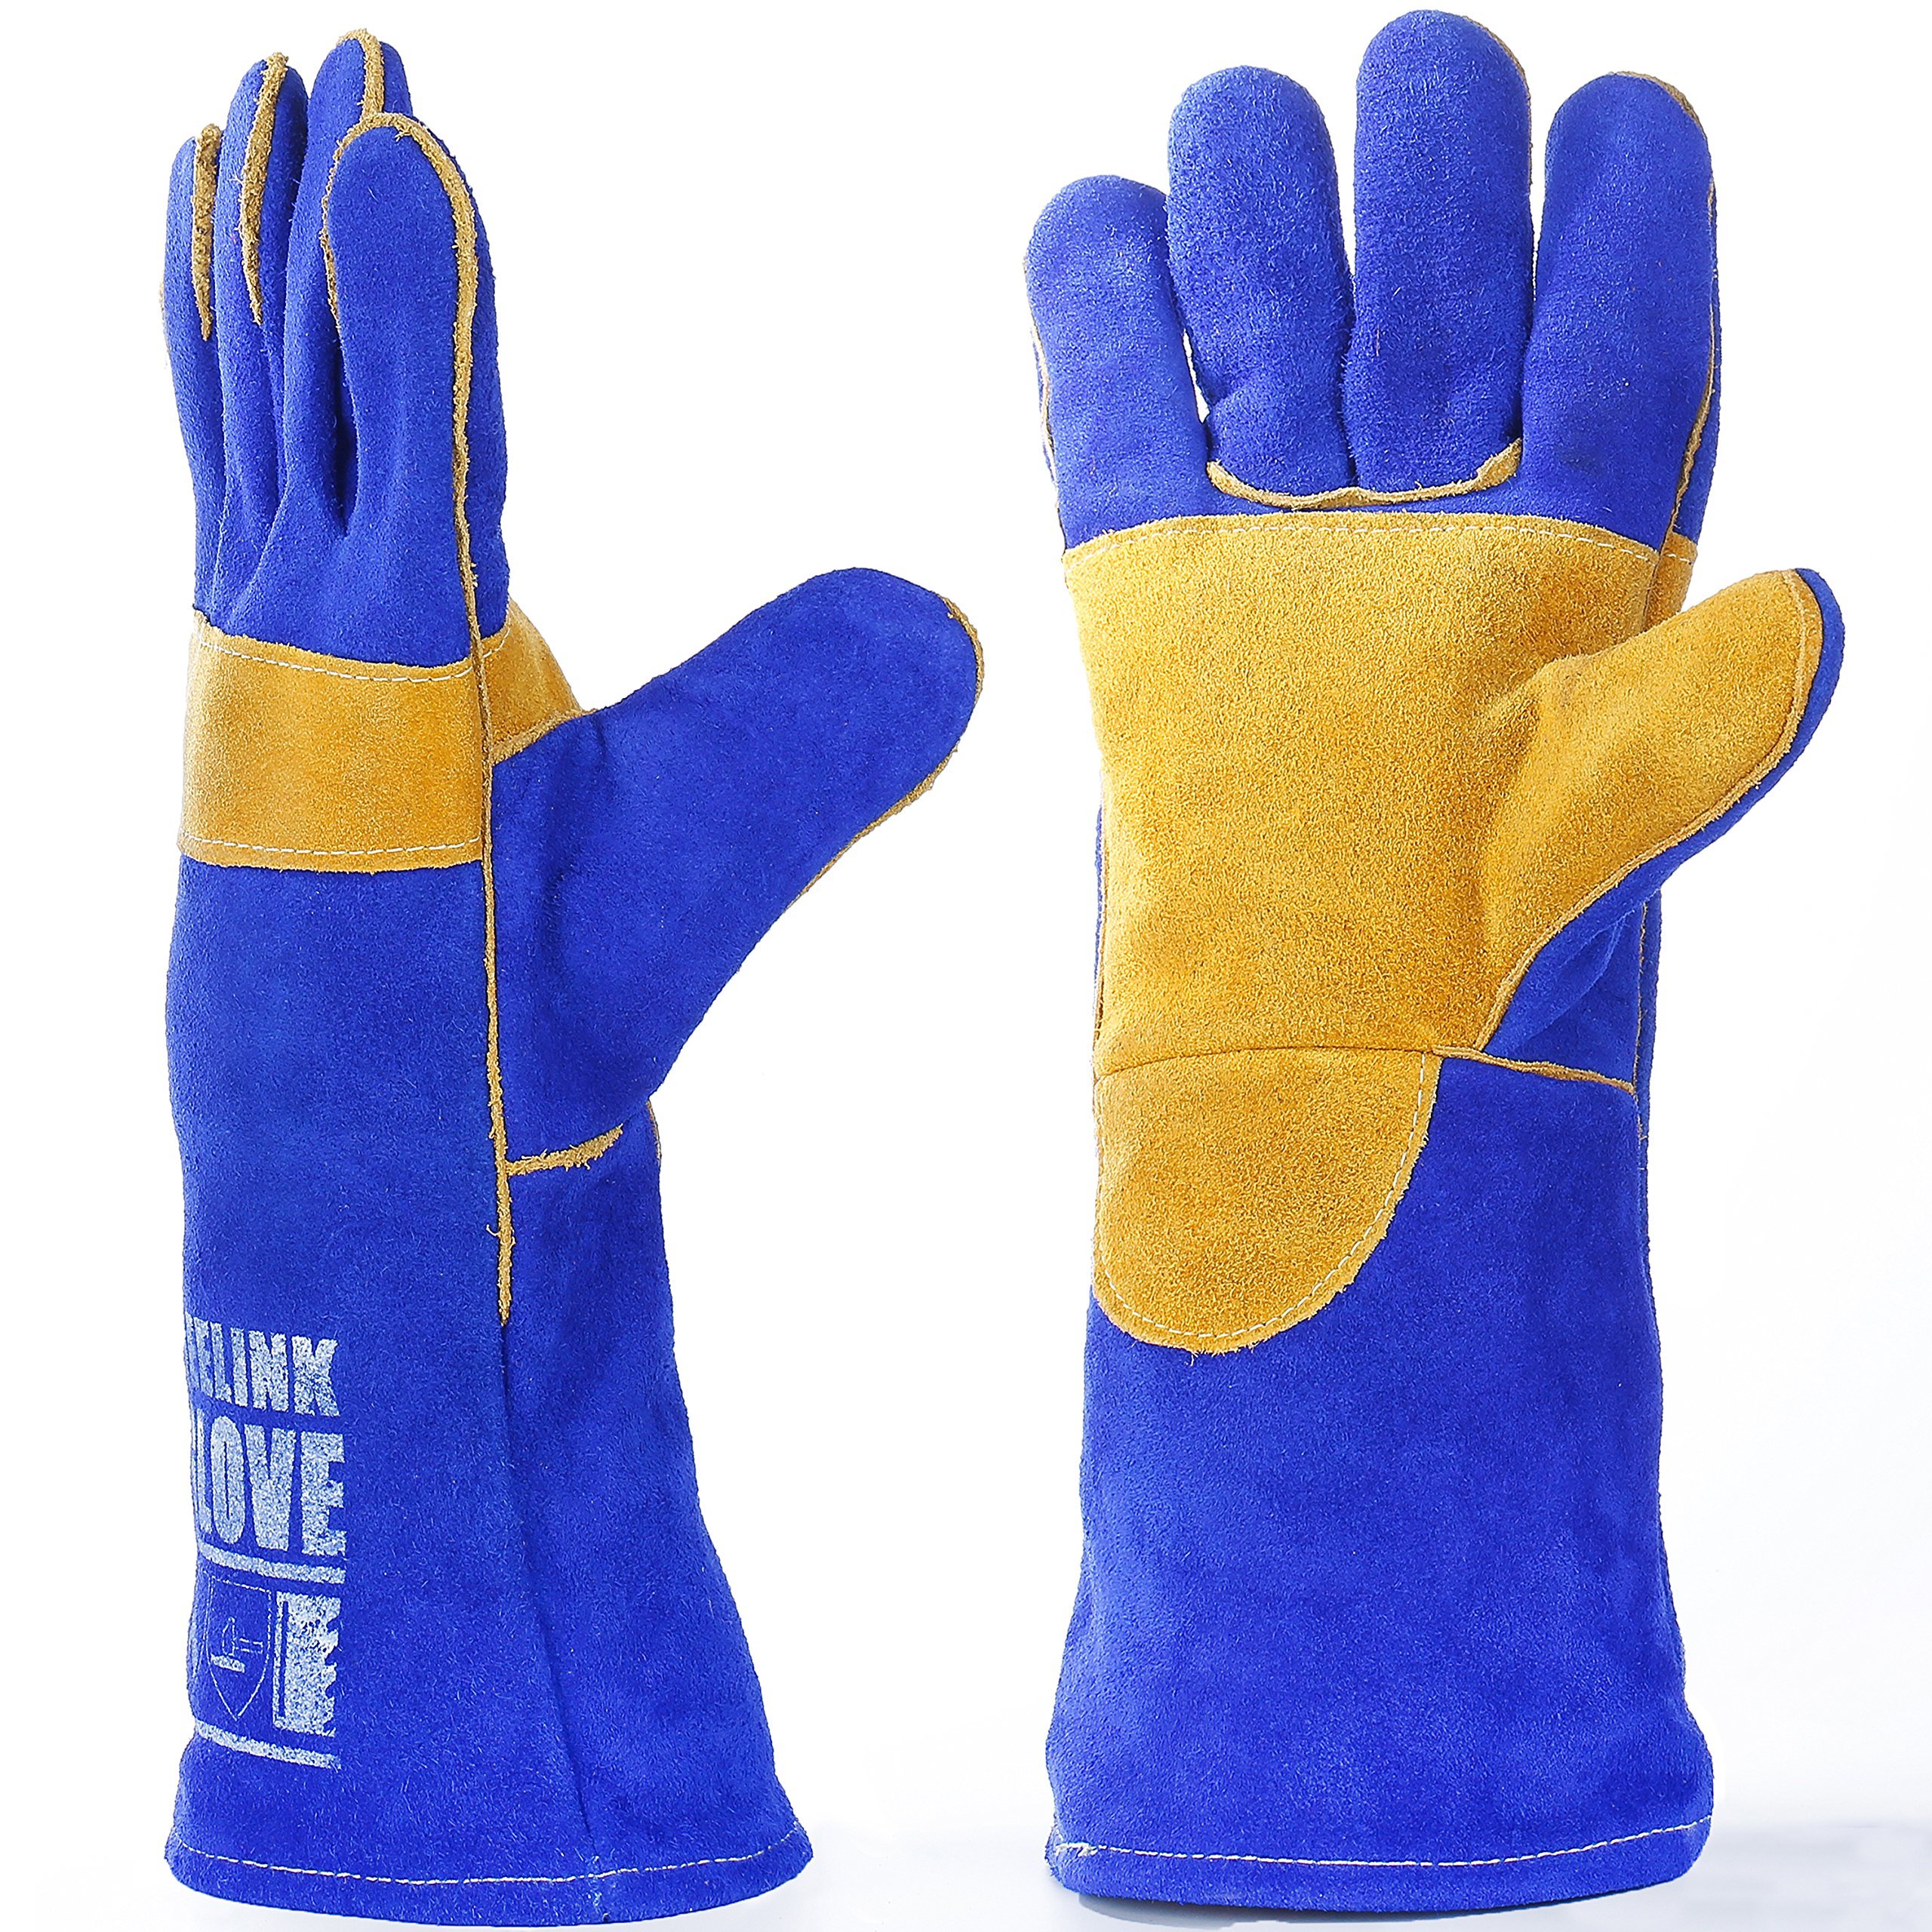 QeeLink Heat Resistant Welding Gloves - Reinforced Palm - Cotton Lined And Kevlar Stitching - Suitable For Fireplace Gloves, Camping Gloves, Gardening gloves, Work Gloves (16-inch)